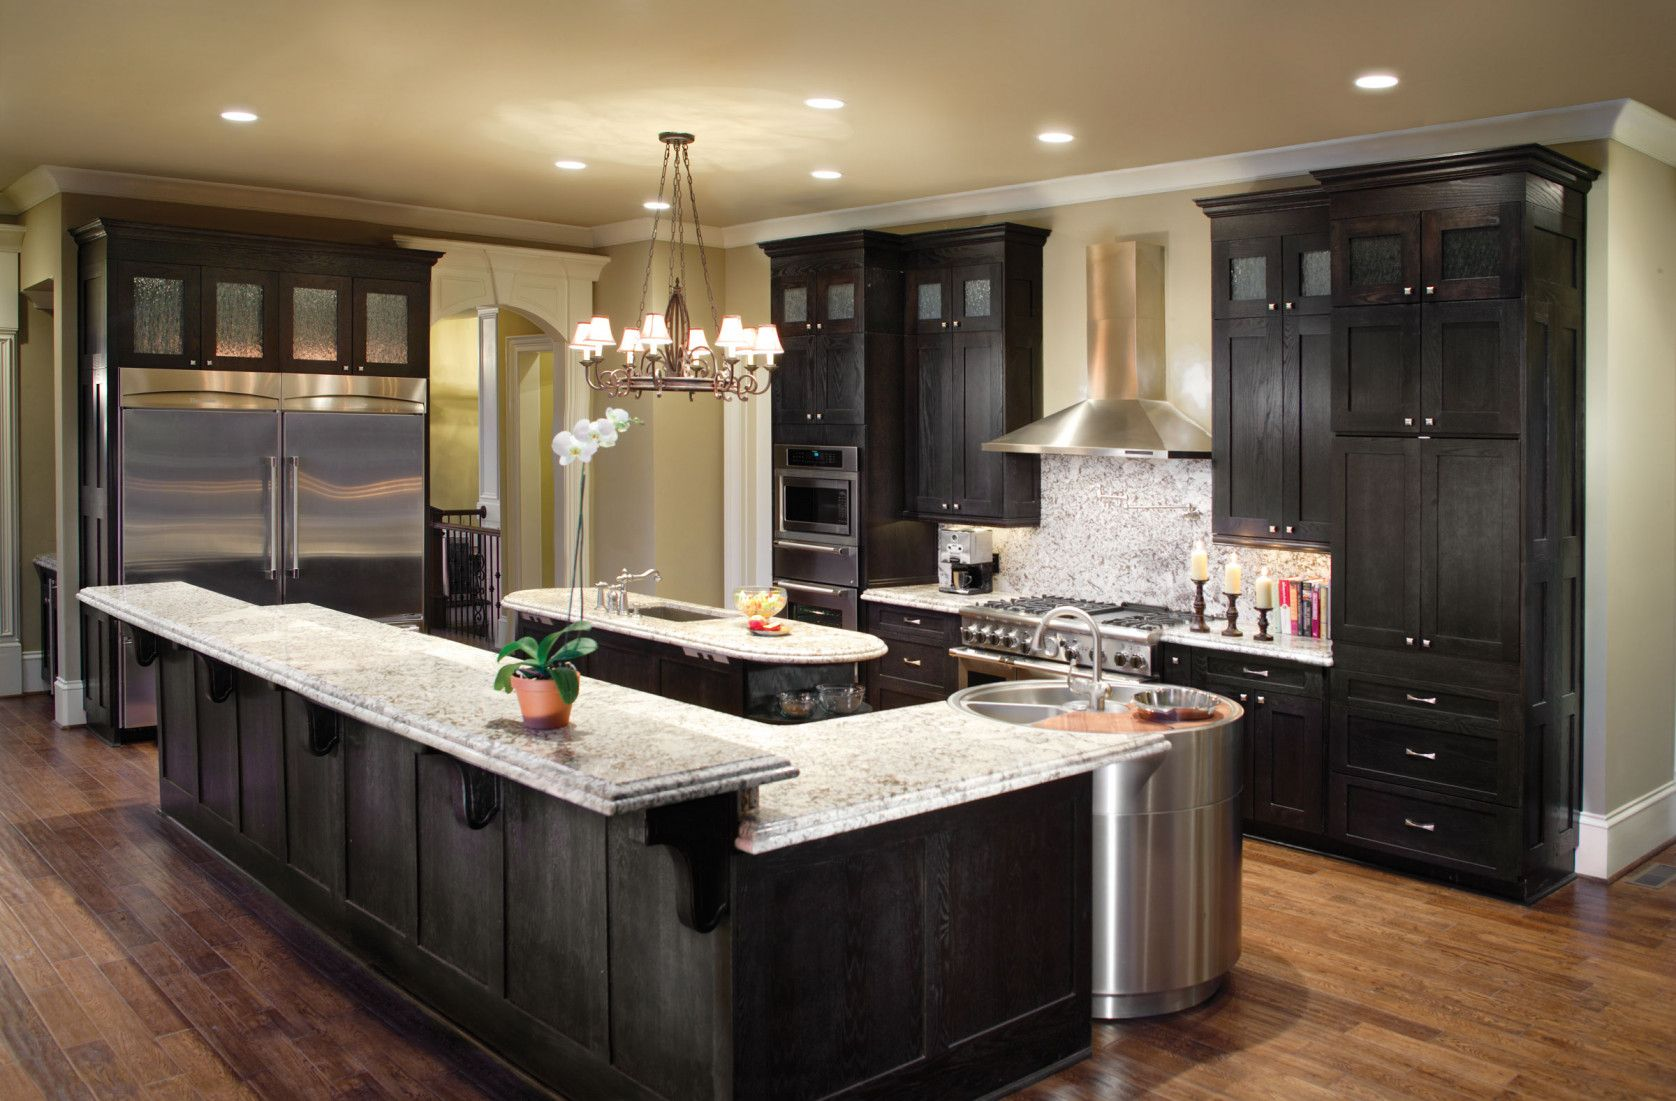 2019 Custom Cabinet Makers Near Me Kitchen Cabinet Inserts Ideas Check More At Http Www Planetgreenspot Com 50 Custo Custom Cabinets Kitchen Cabinet Makers